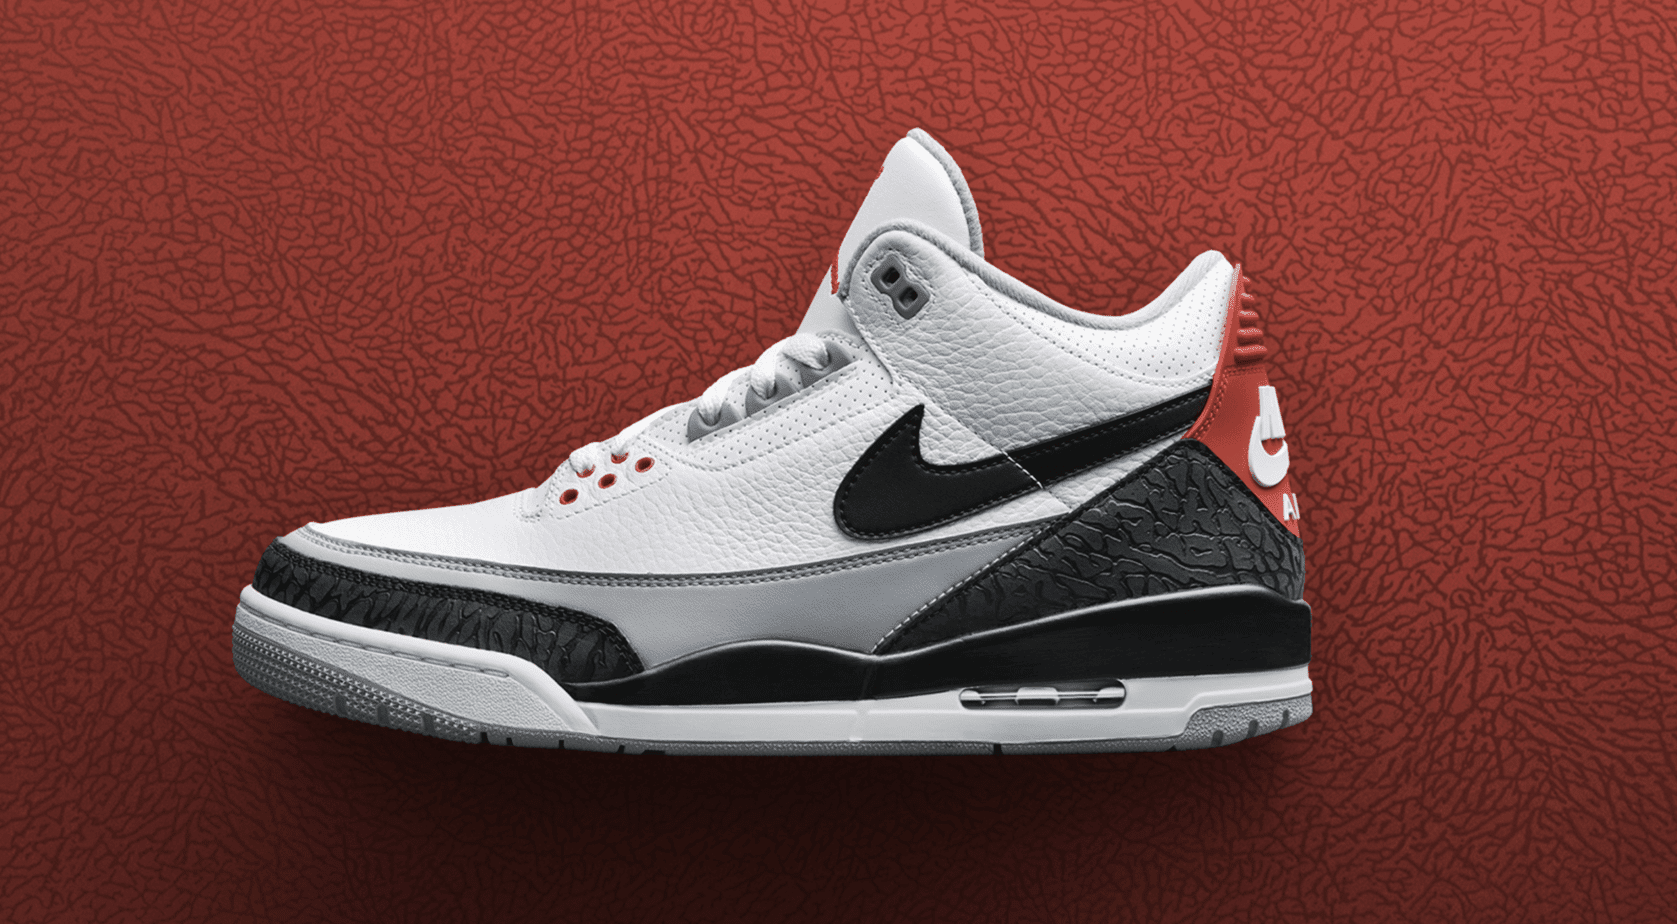 72fbacd877d The Air Jordan 3 Tinker is almost here. The new-look Jordan 3 surprised  fans earlier this year when the brand unveiled the Swoosh-ed up silhouette.